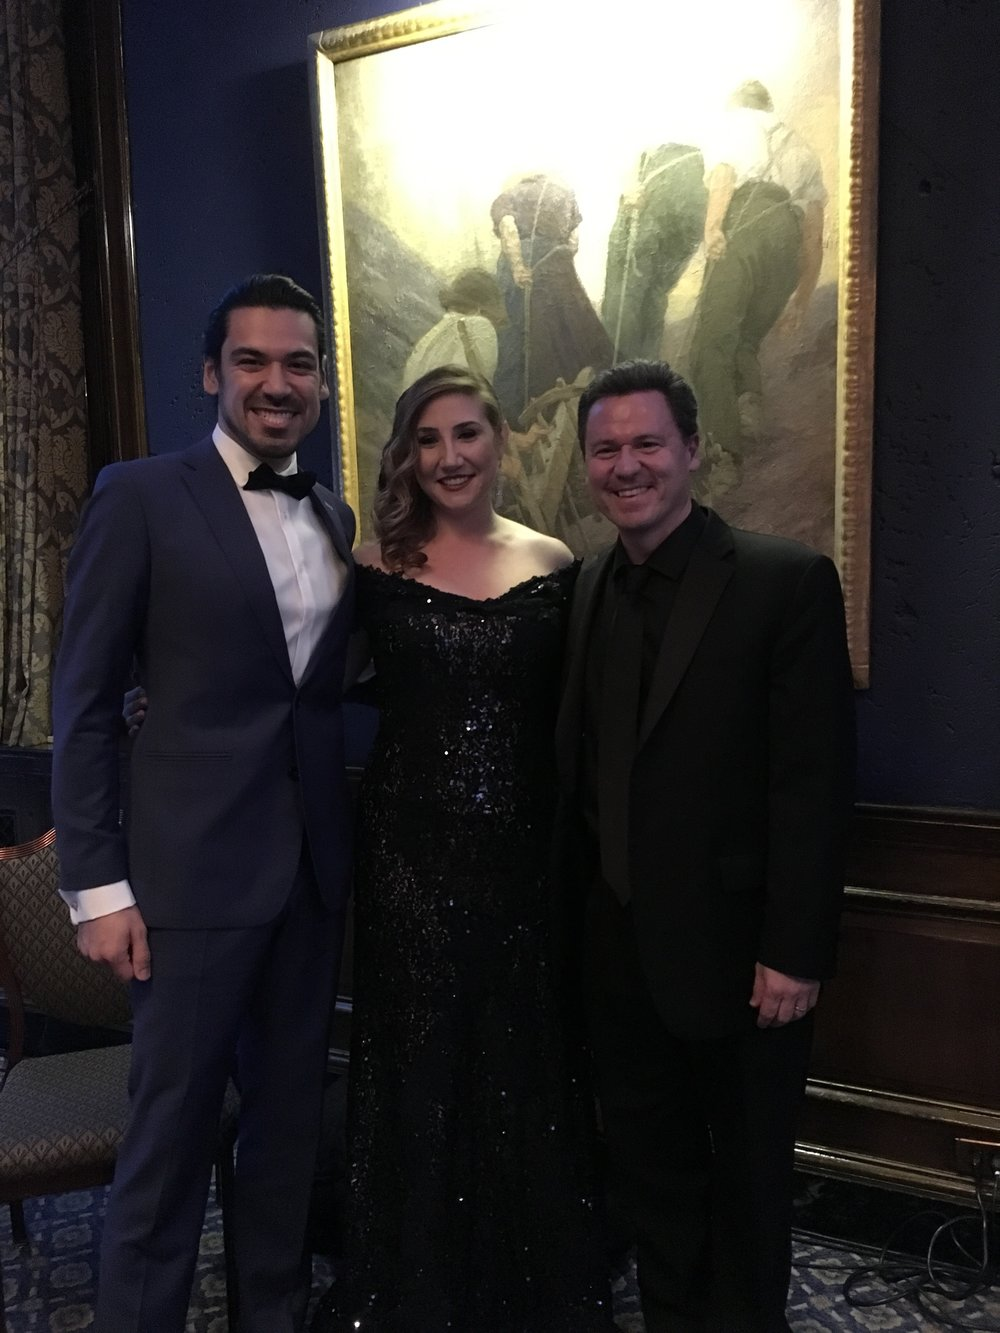 At the Luminarts Gala at the Union League Club in Chicago, IL - two of my favorite operatic soloists ever!